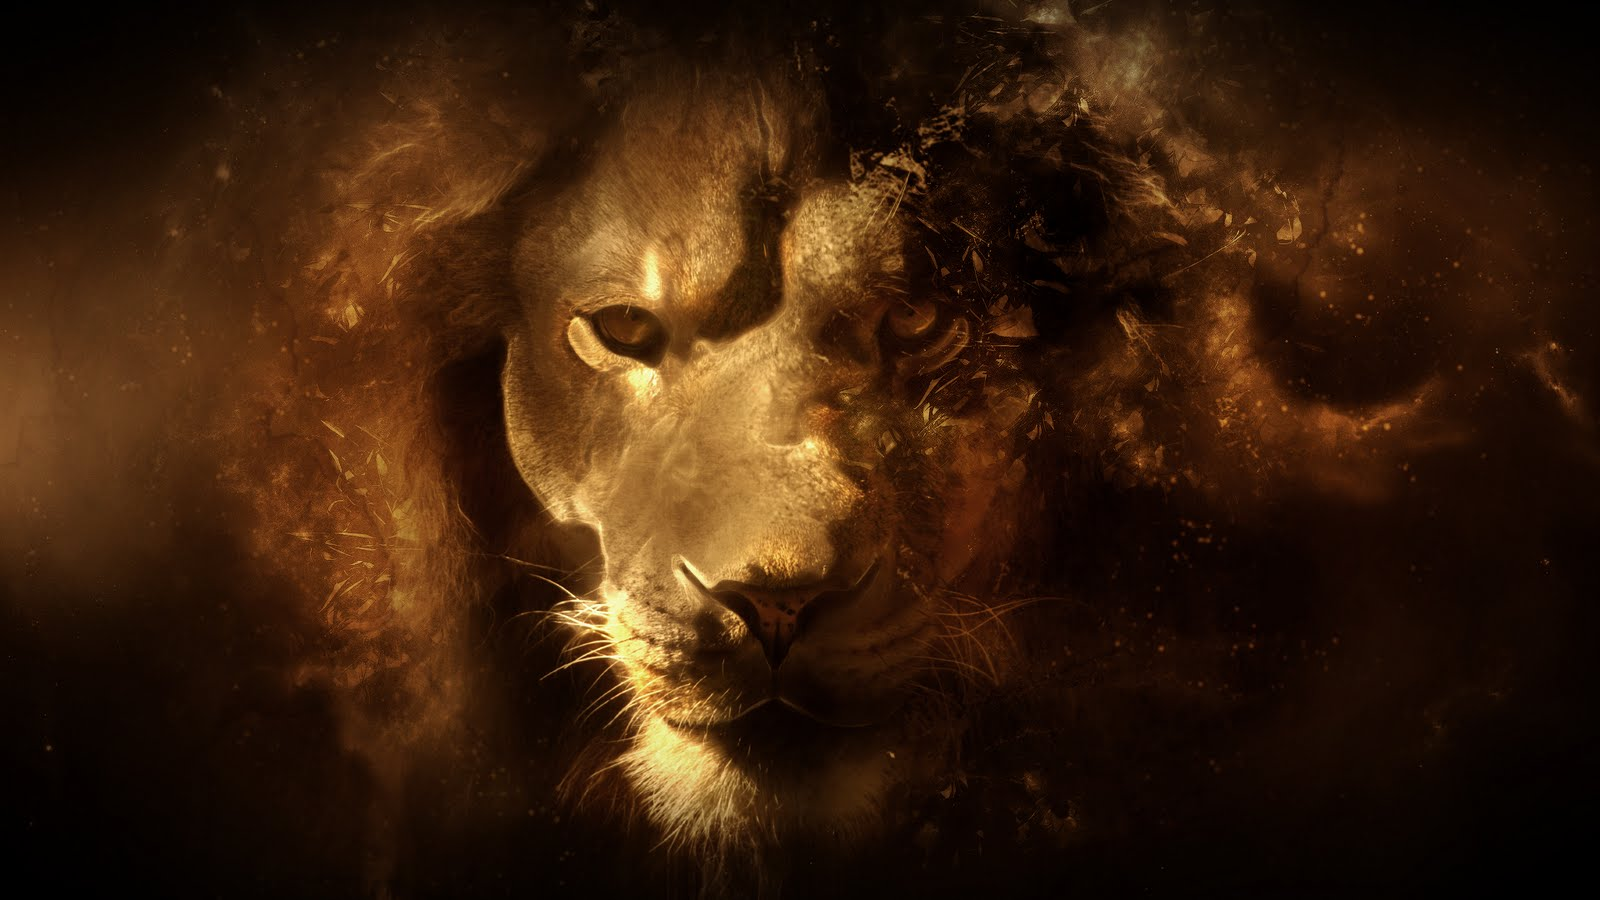 Lion Full HD Quality Wallpapers, 48+ Widescreen Wallpapers